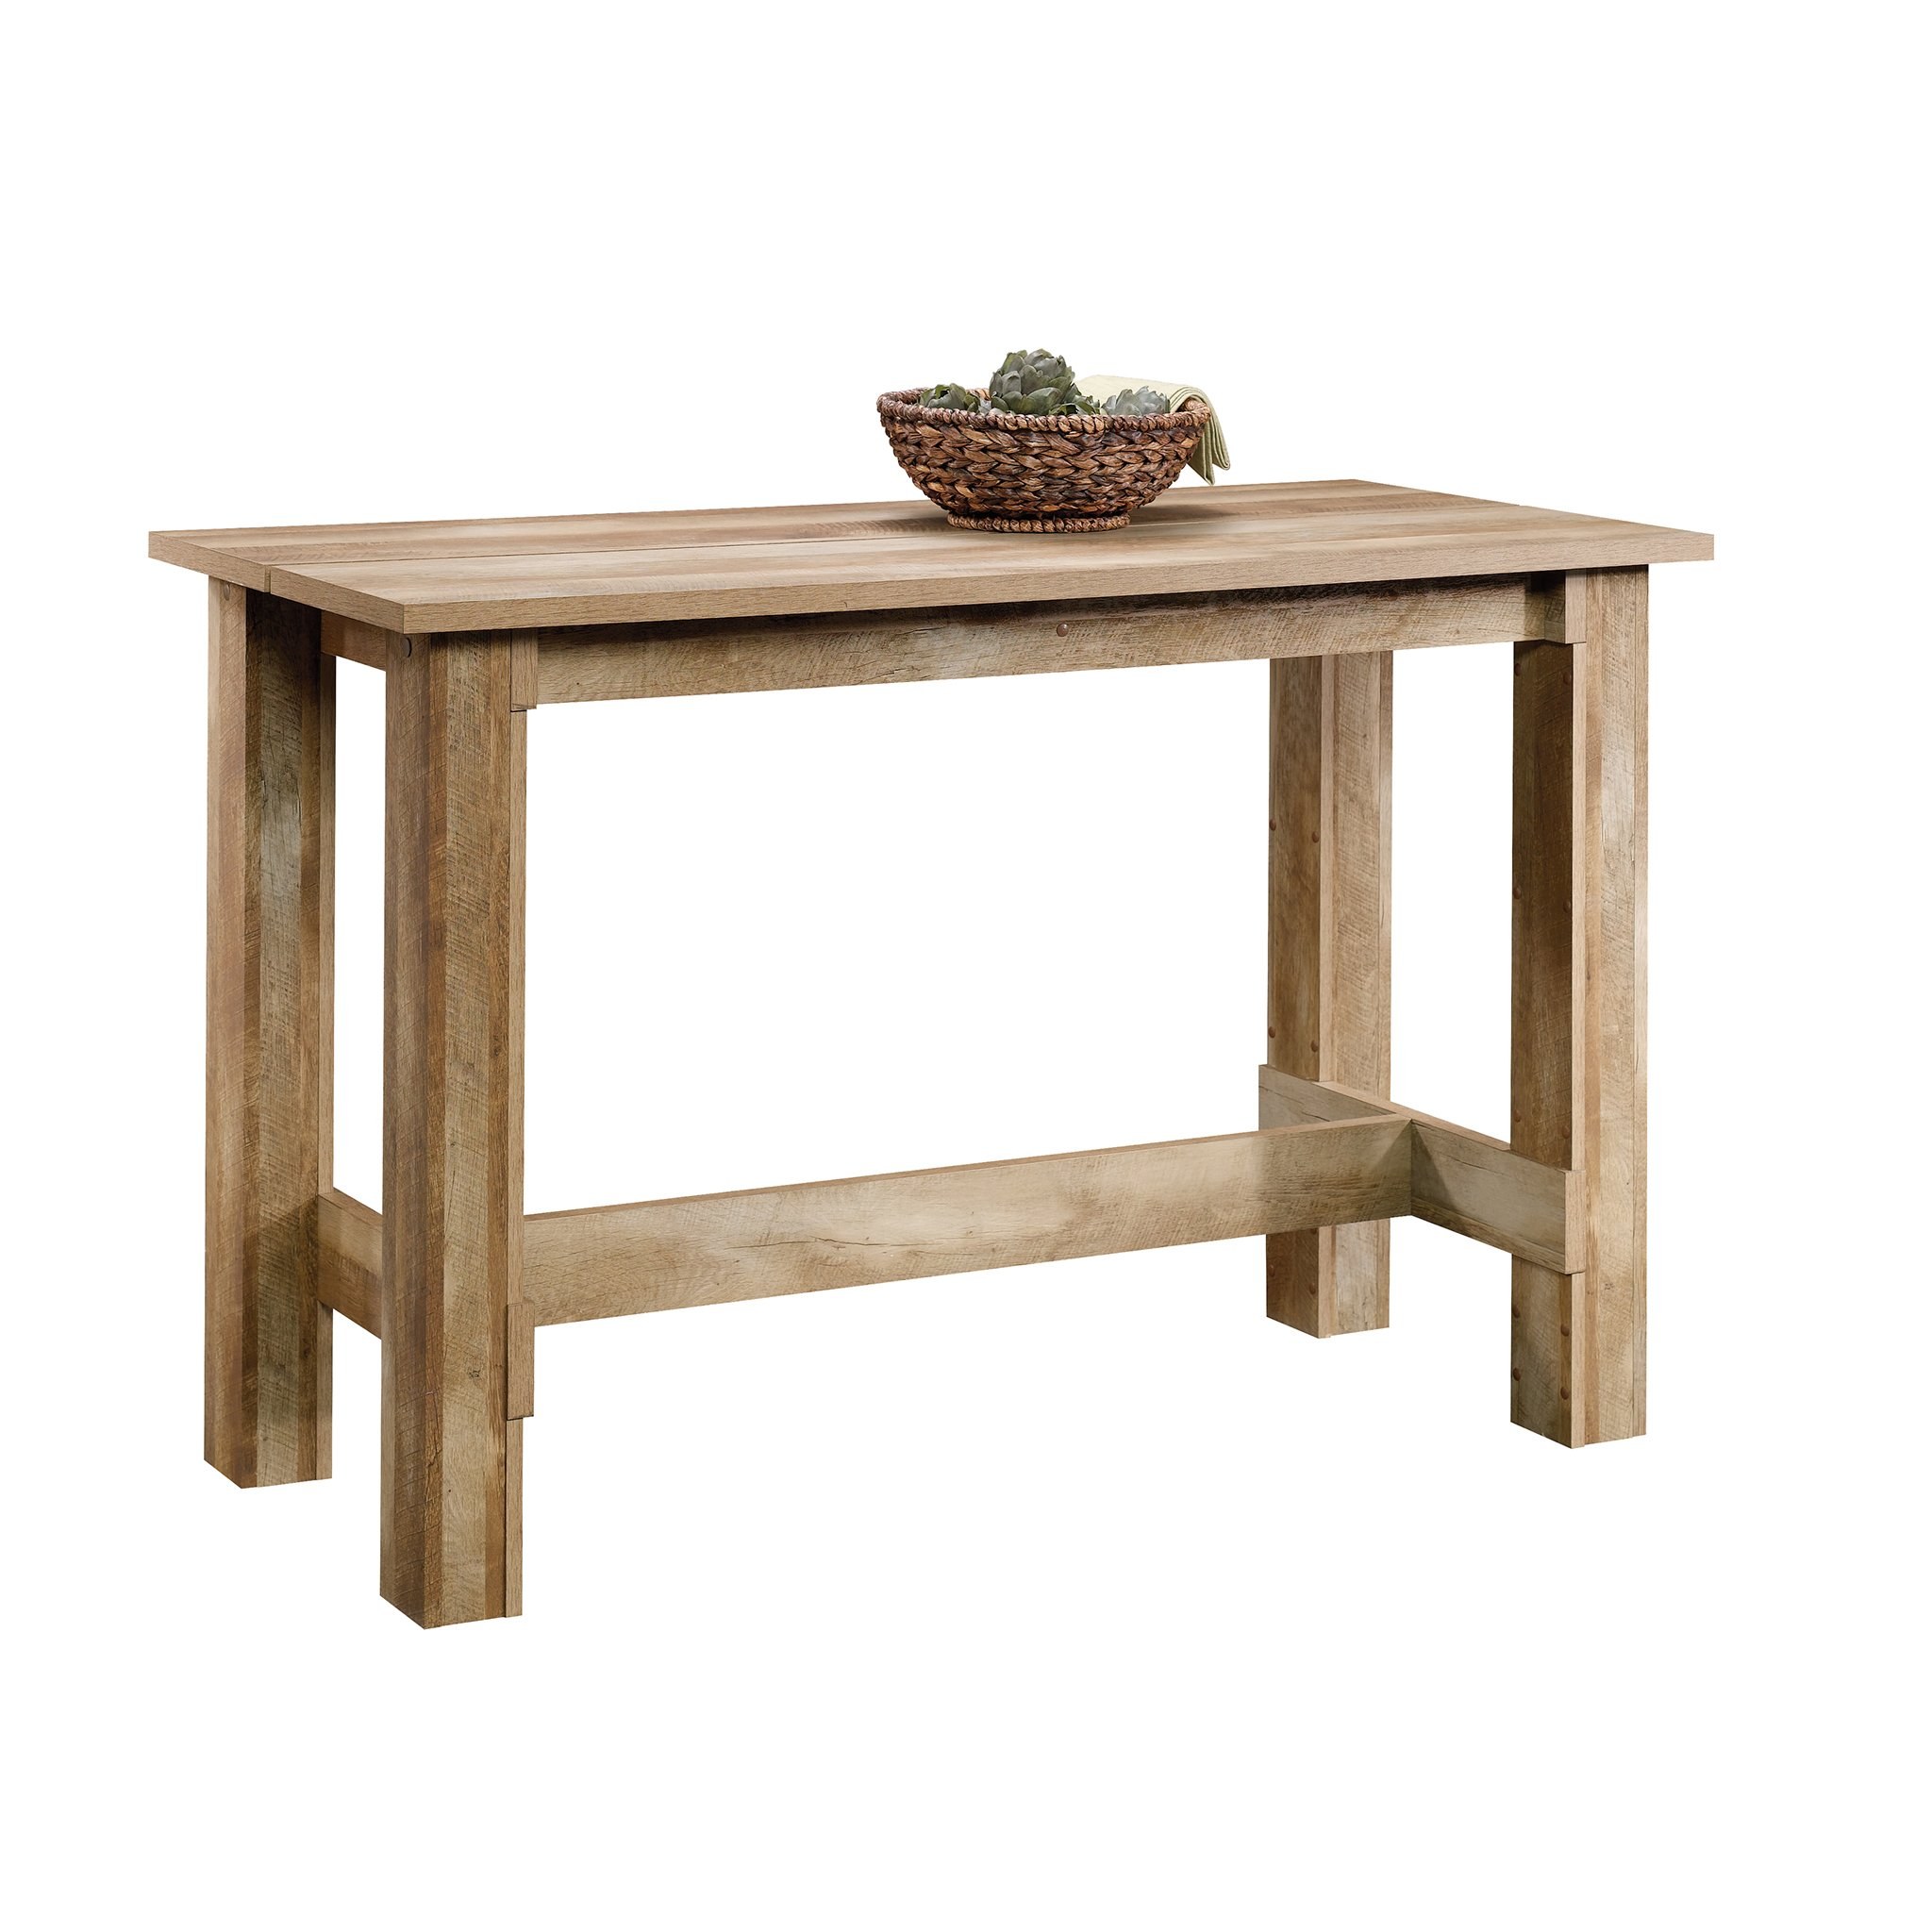 Sauder 416698 Boone Mountain Counter Height Dining Table, L: 55.12'' x W: 25.59'' x H: 35.39'', Craftsman Oak finish by Sauder